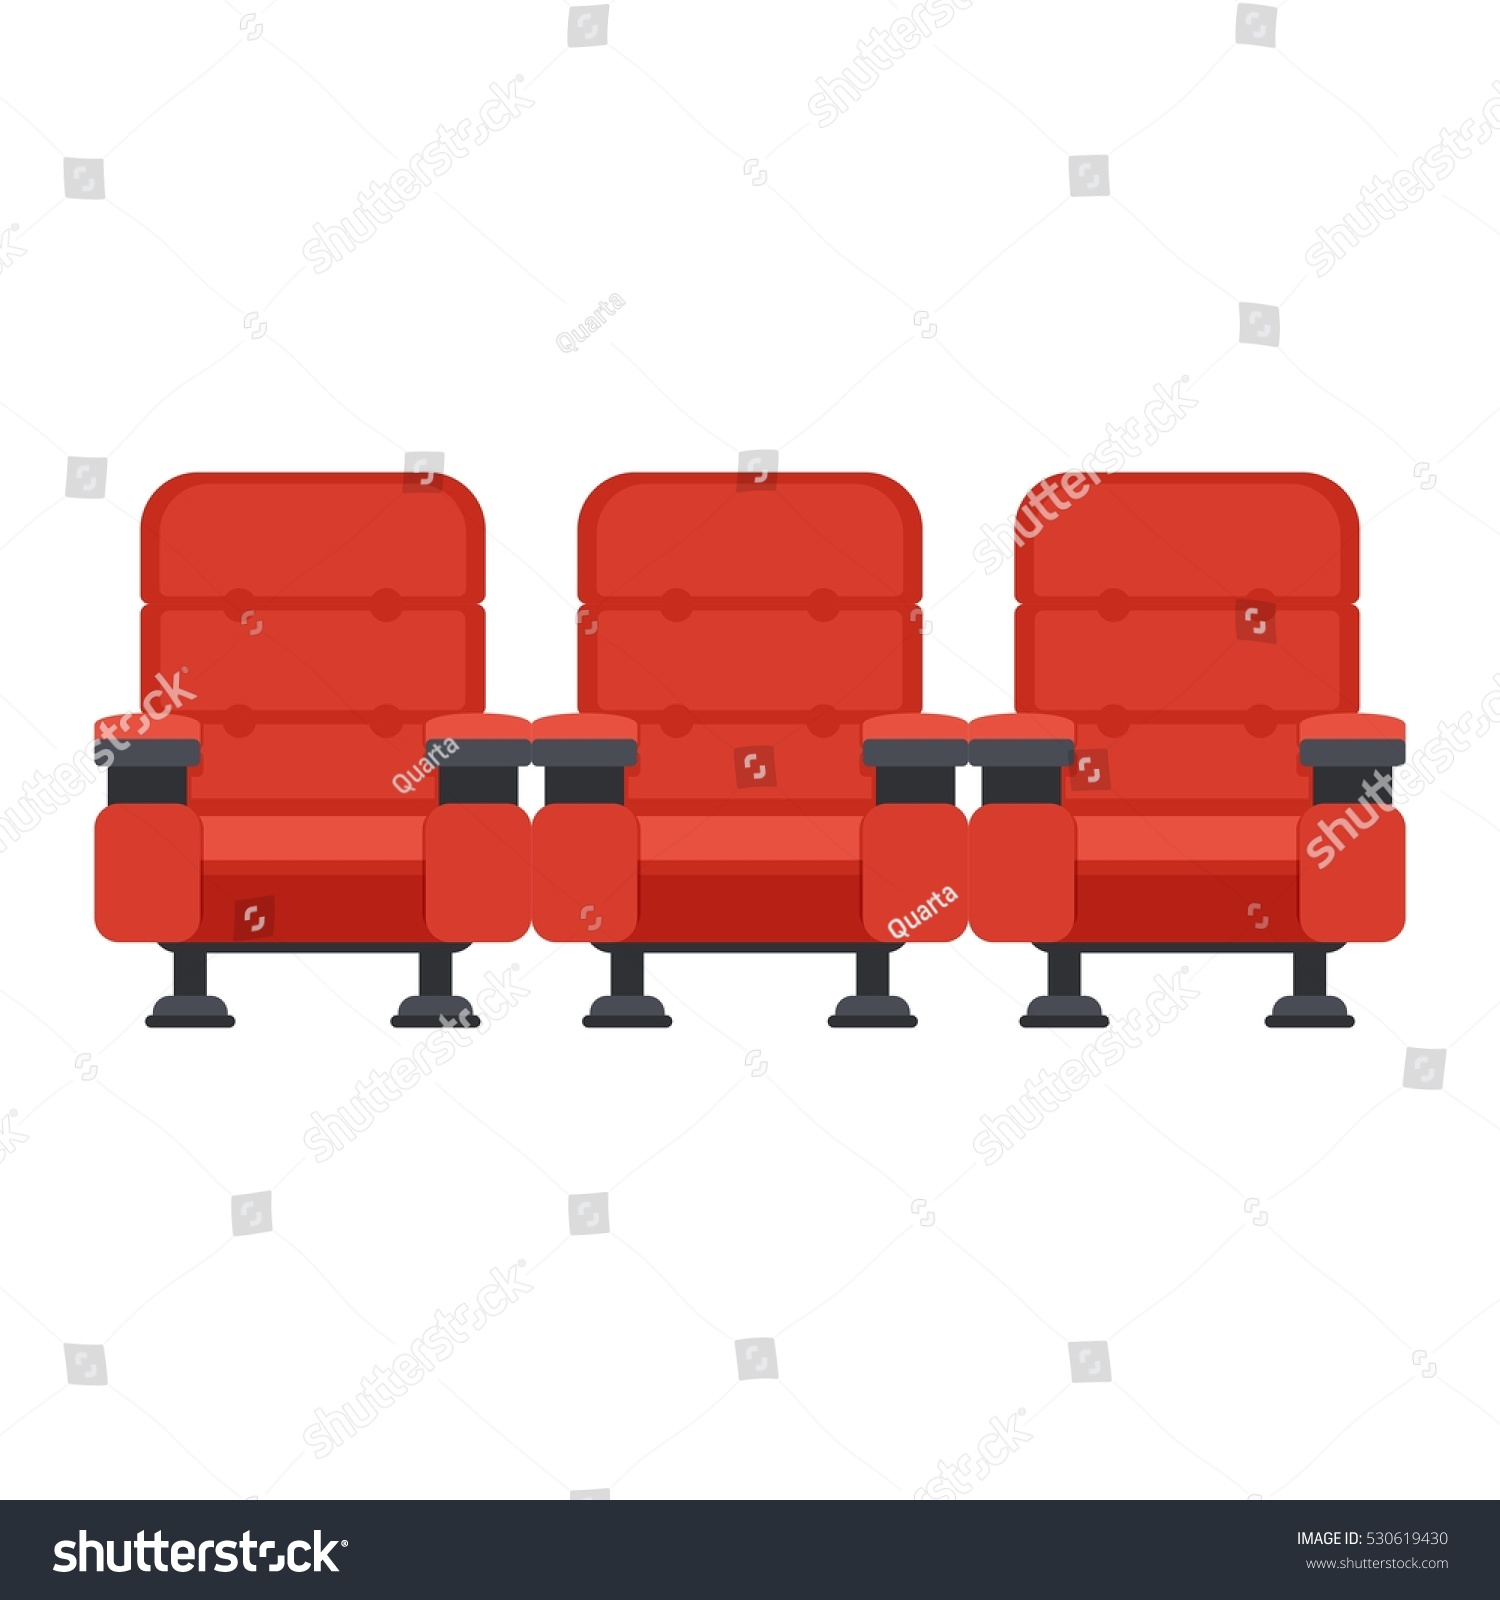 Auditorium Seats Movie Theater Flat Vector Stock Vector ...